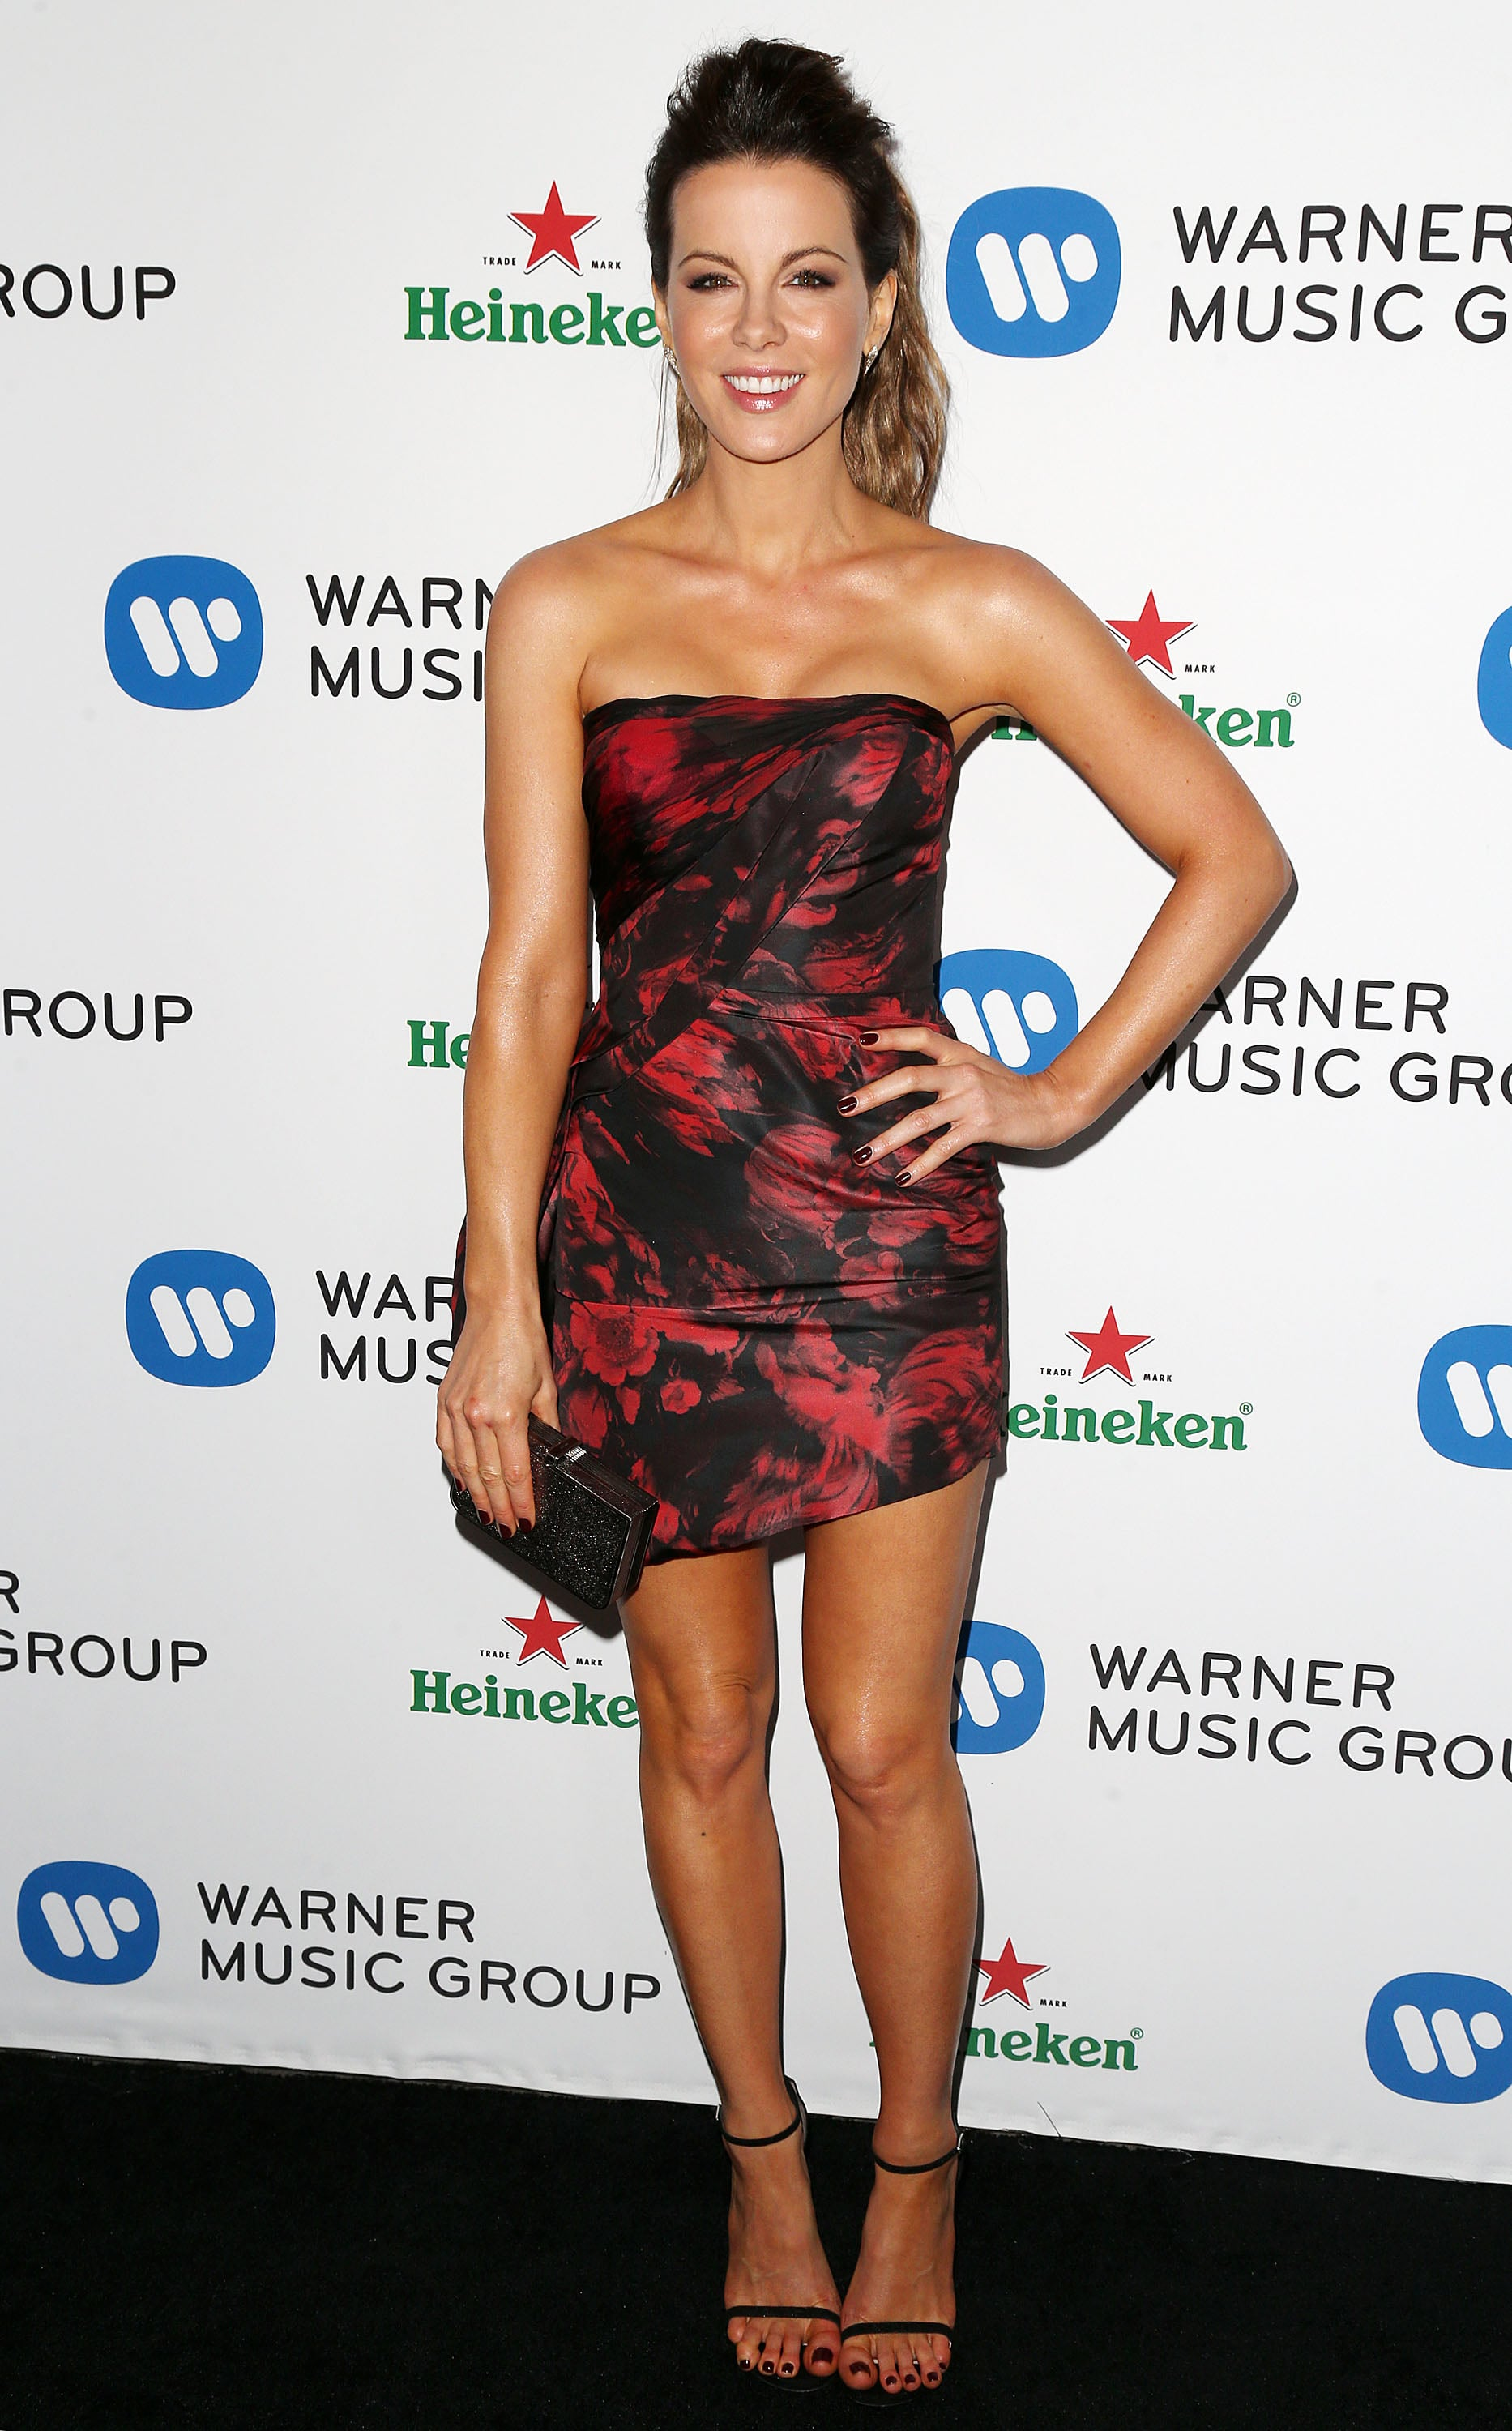 Kate Beckinsale at the Warner Group's Grammys Celebration